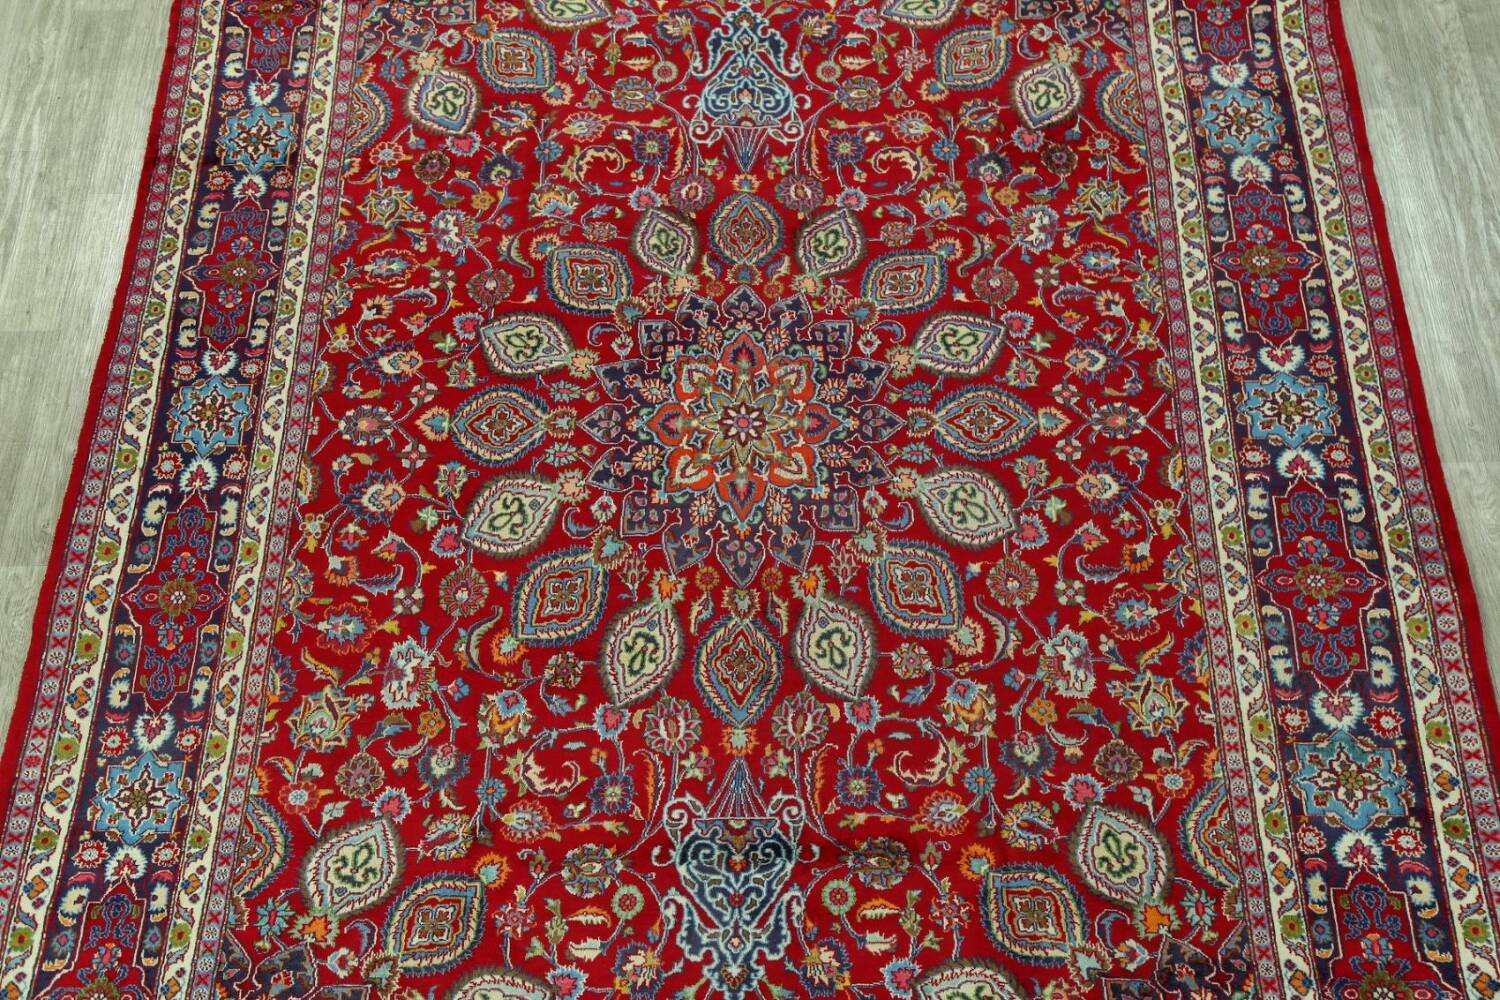 Floral Red Mashad Persian Area Rug 10x13 image 3